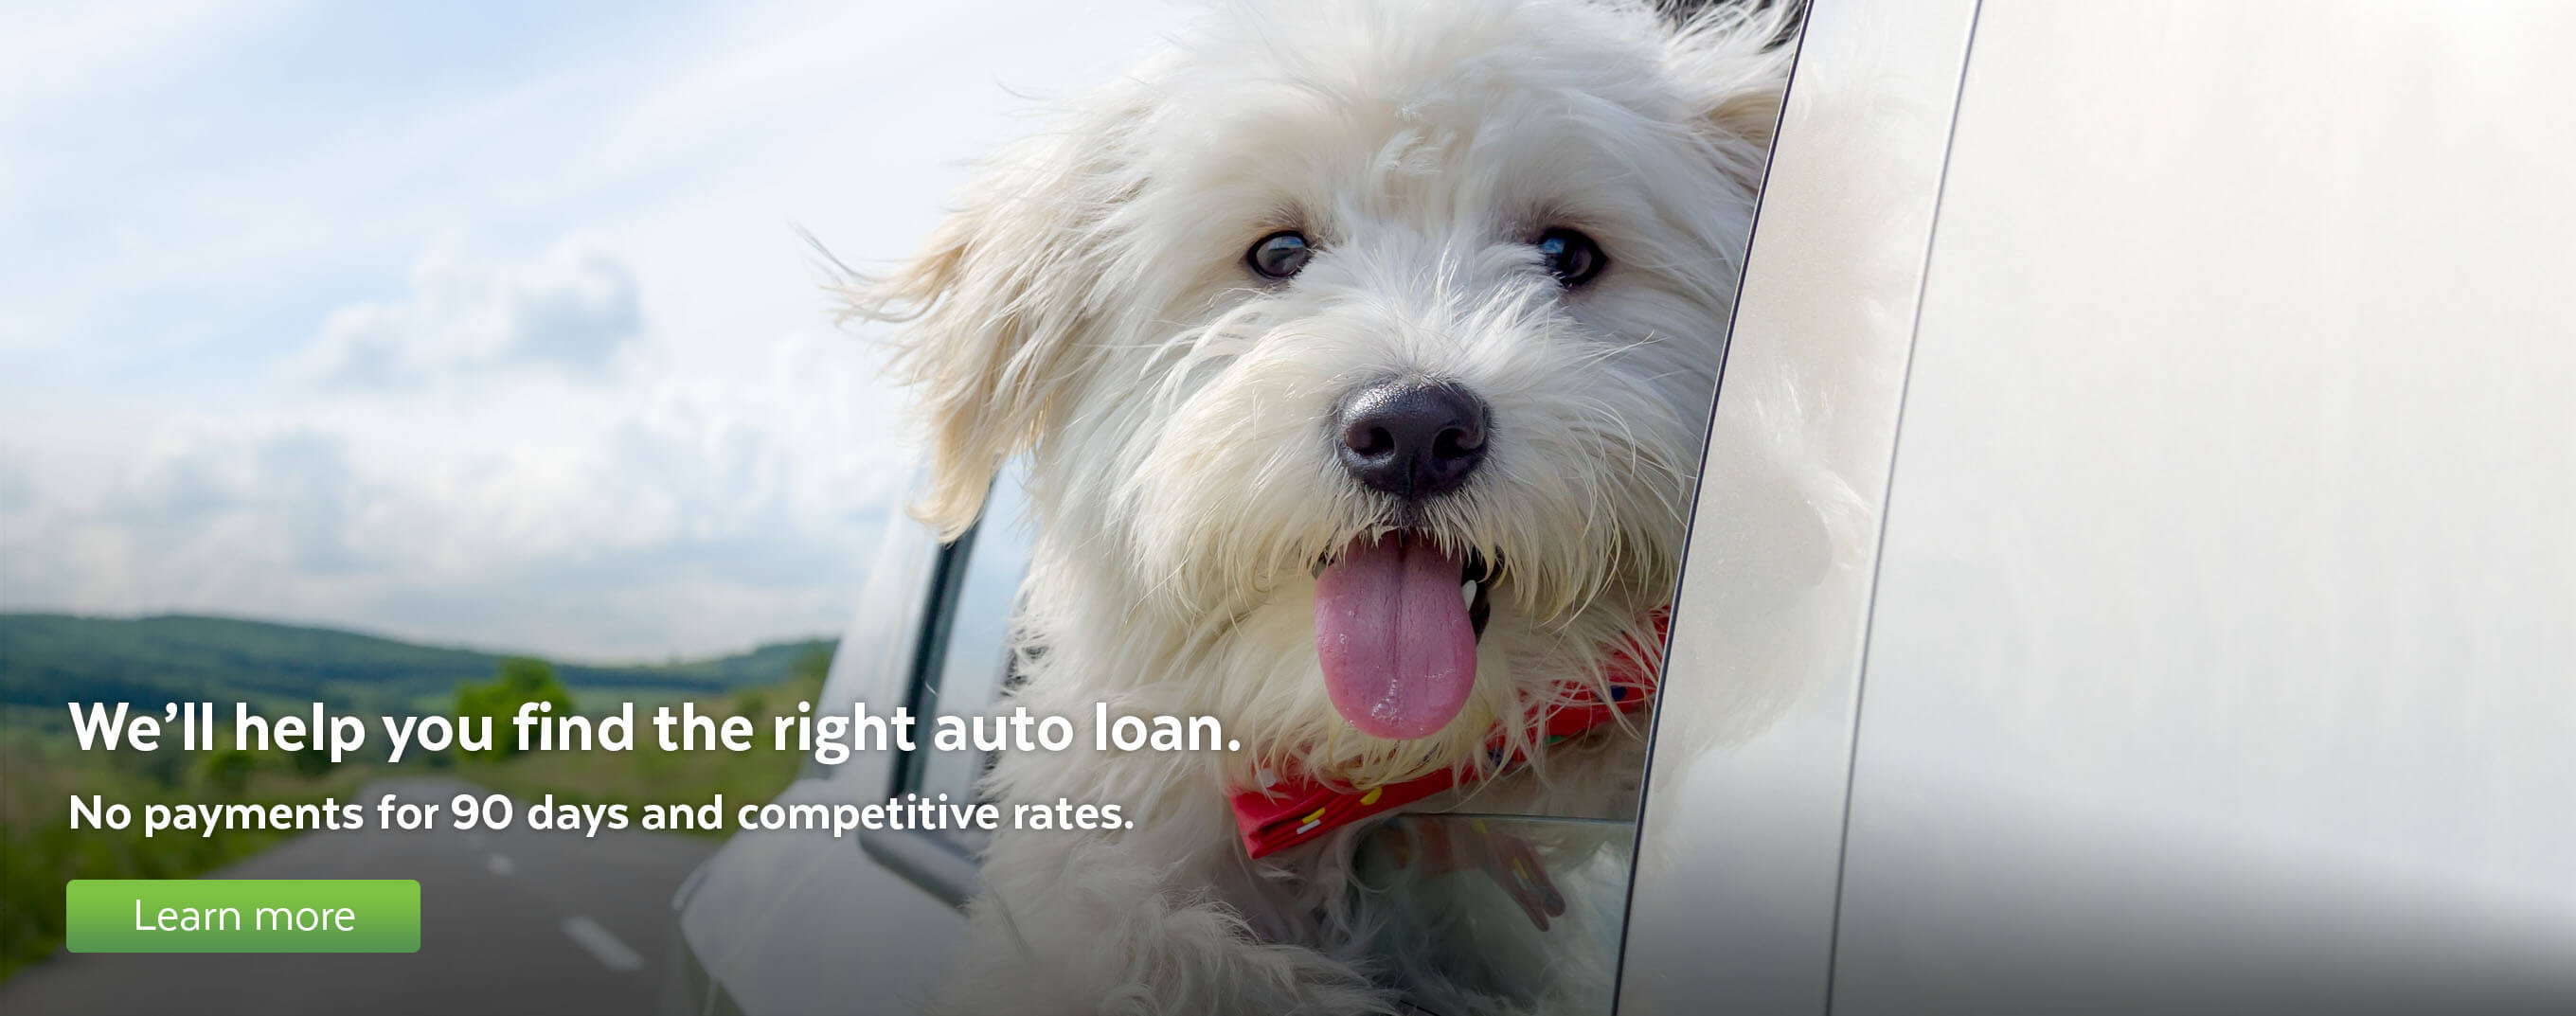 We'll help you find the right auto loan. No payments for 90 days and competitive rates.